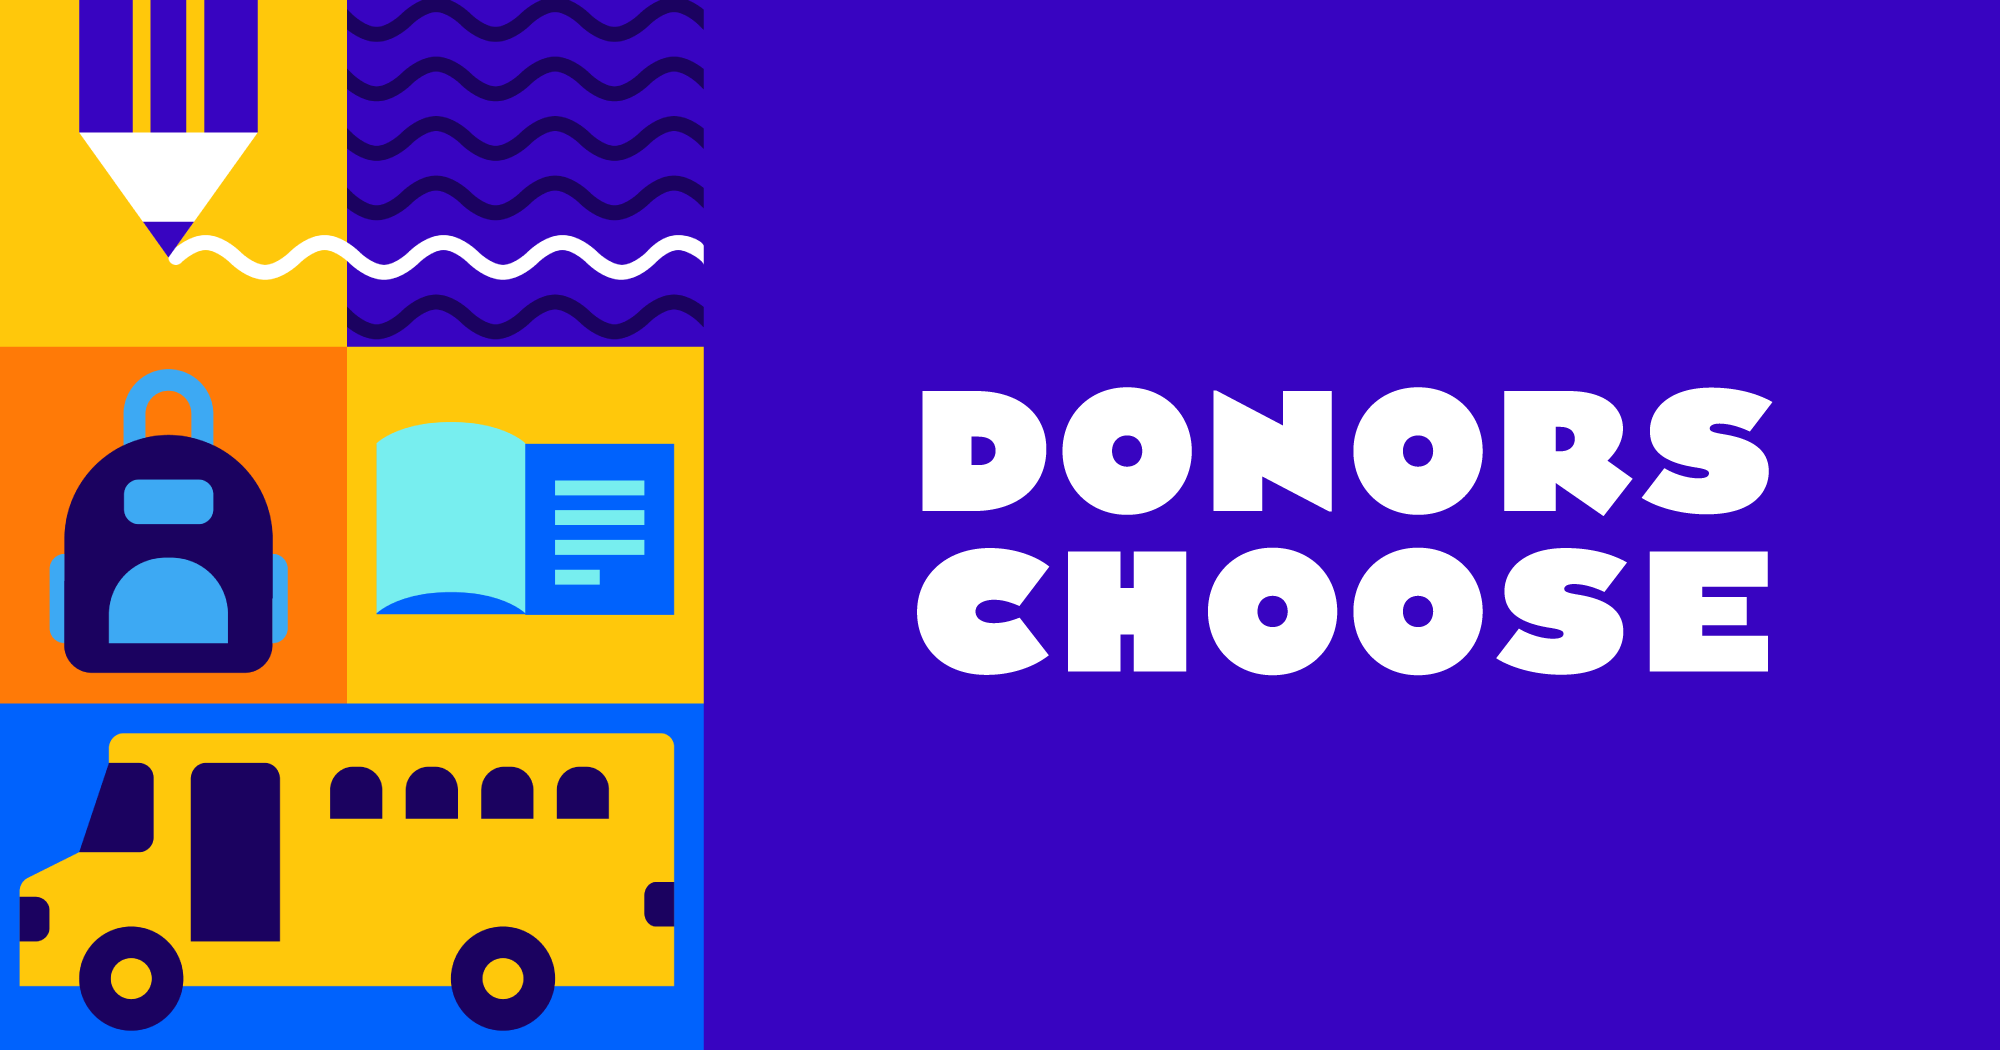 DonorsChoose: Support a classroom. Build a future.